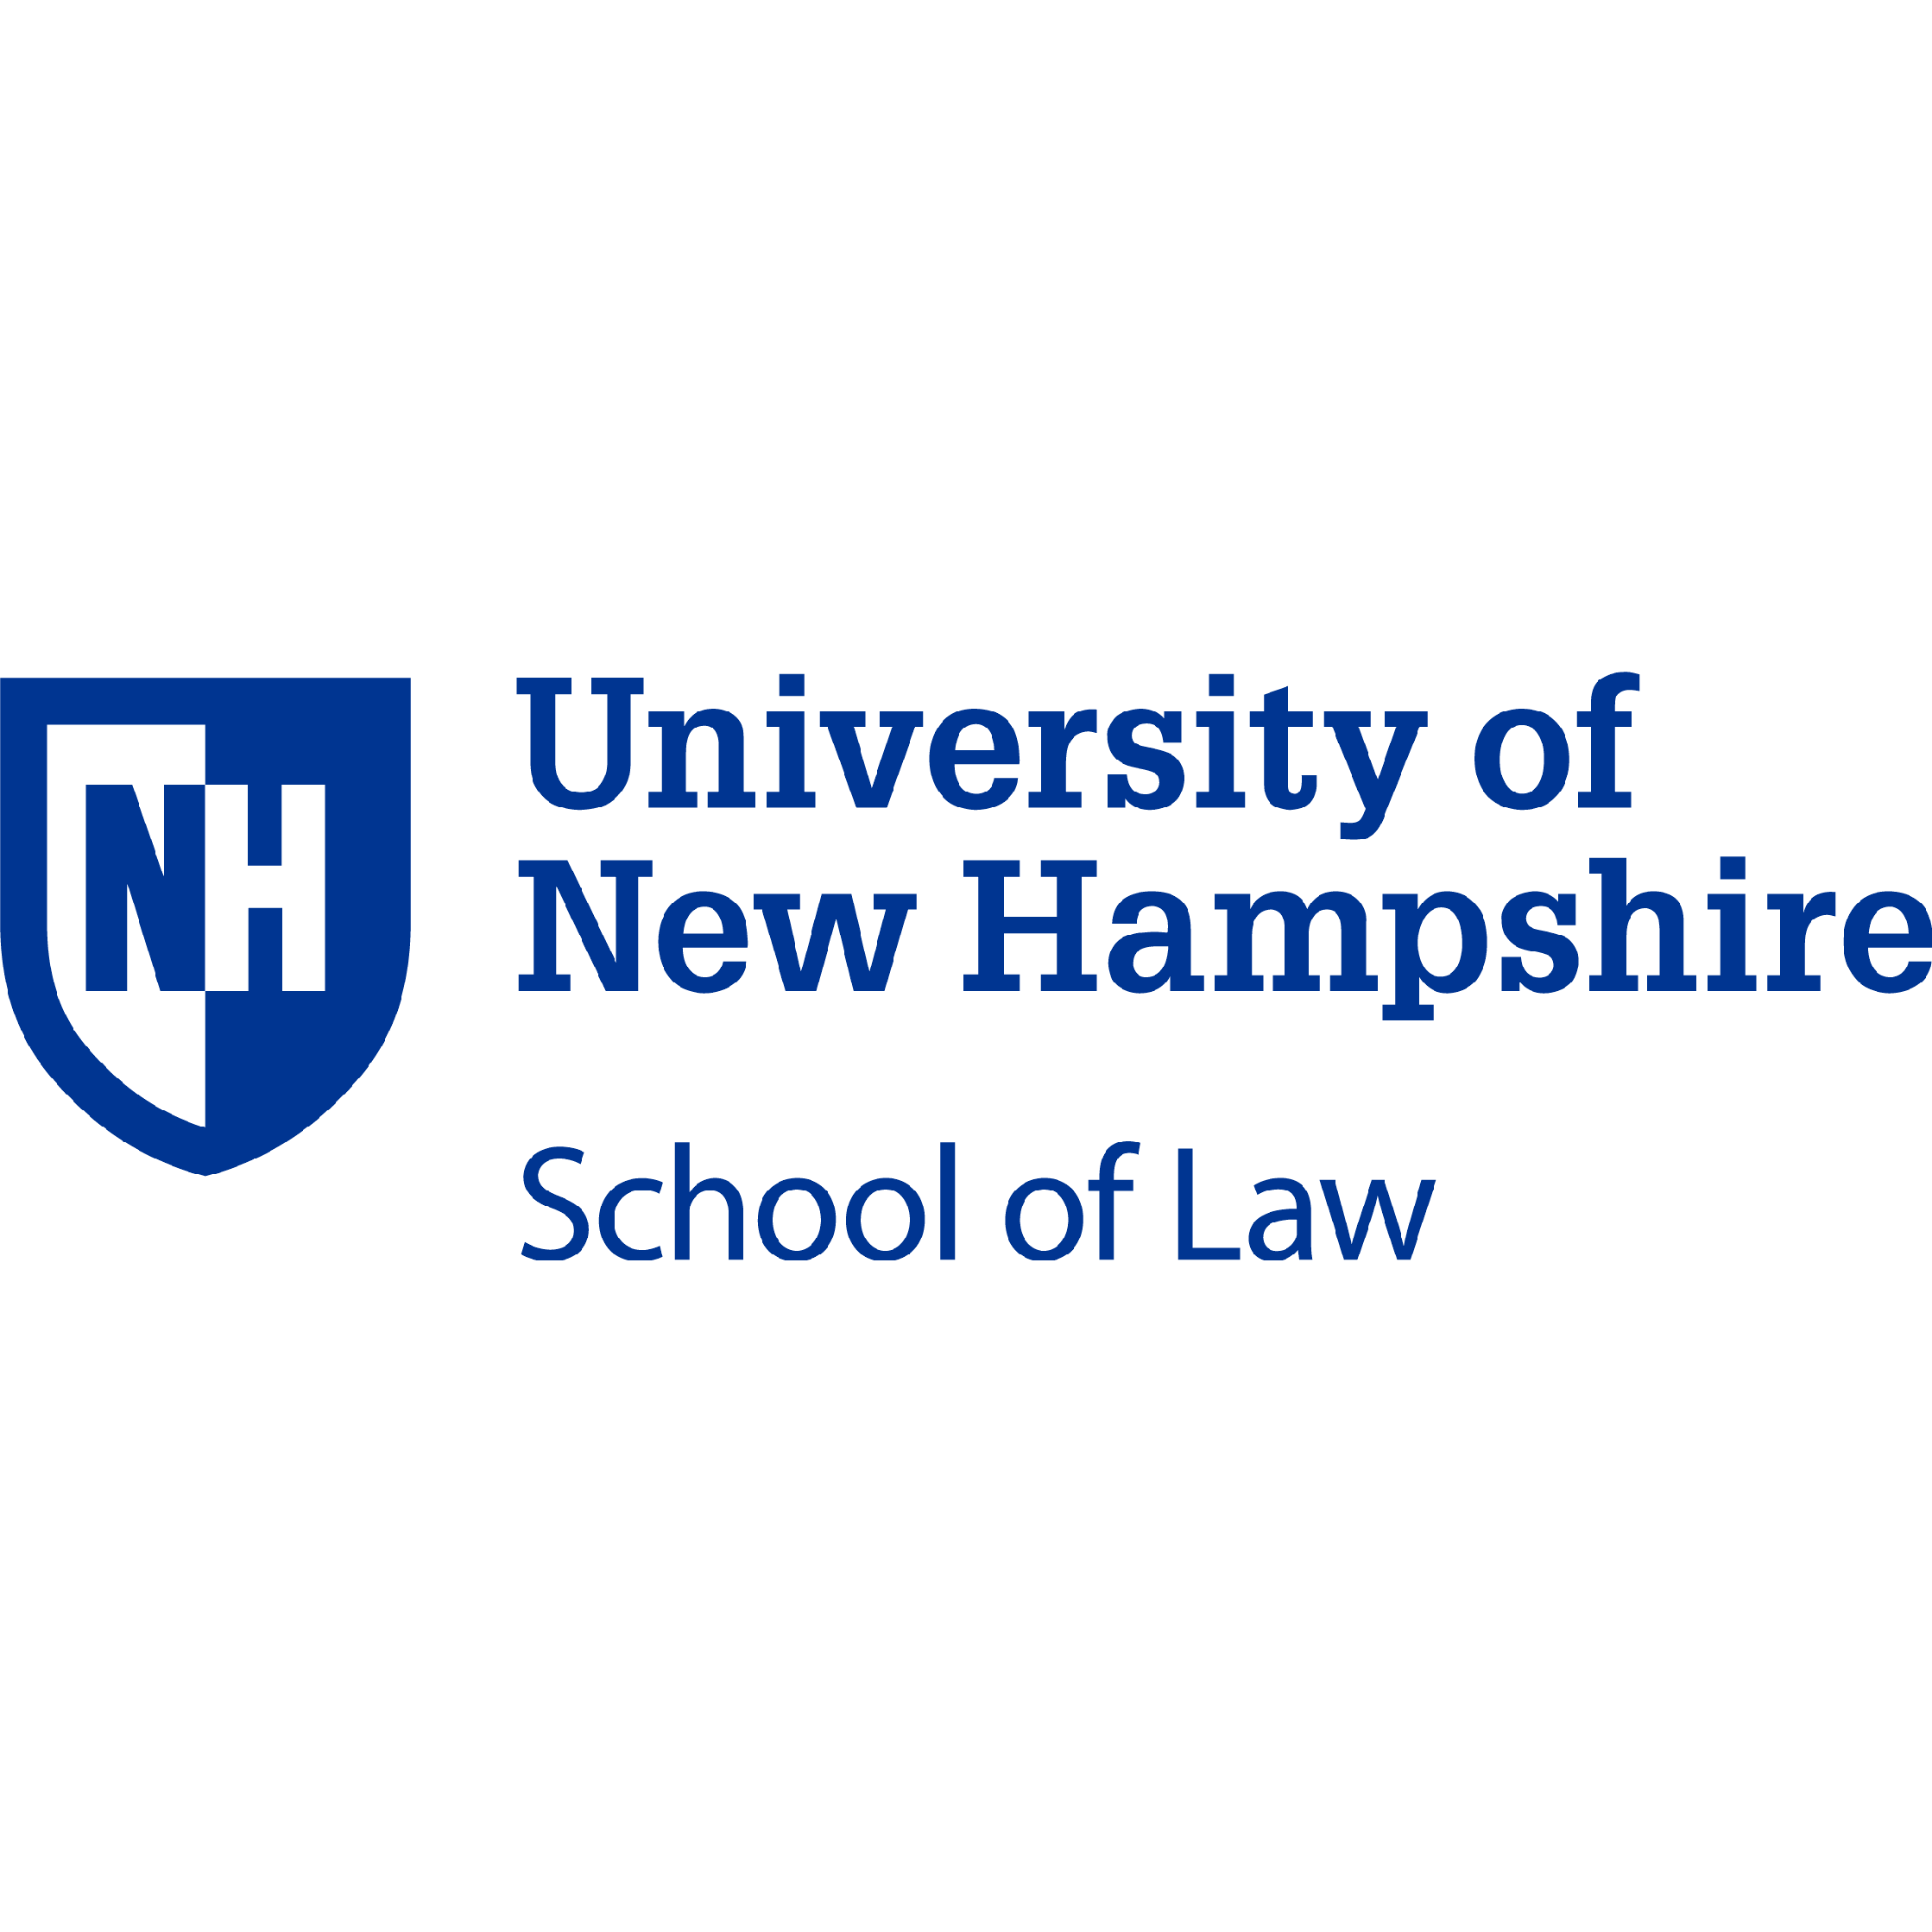 Franklin Pierce Law Center - University of New Hampshir